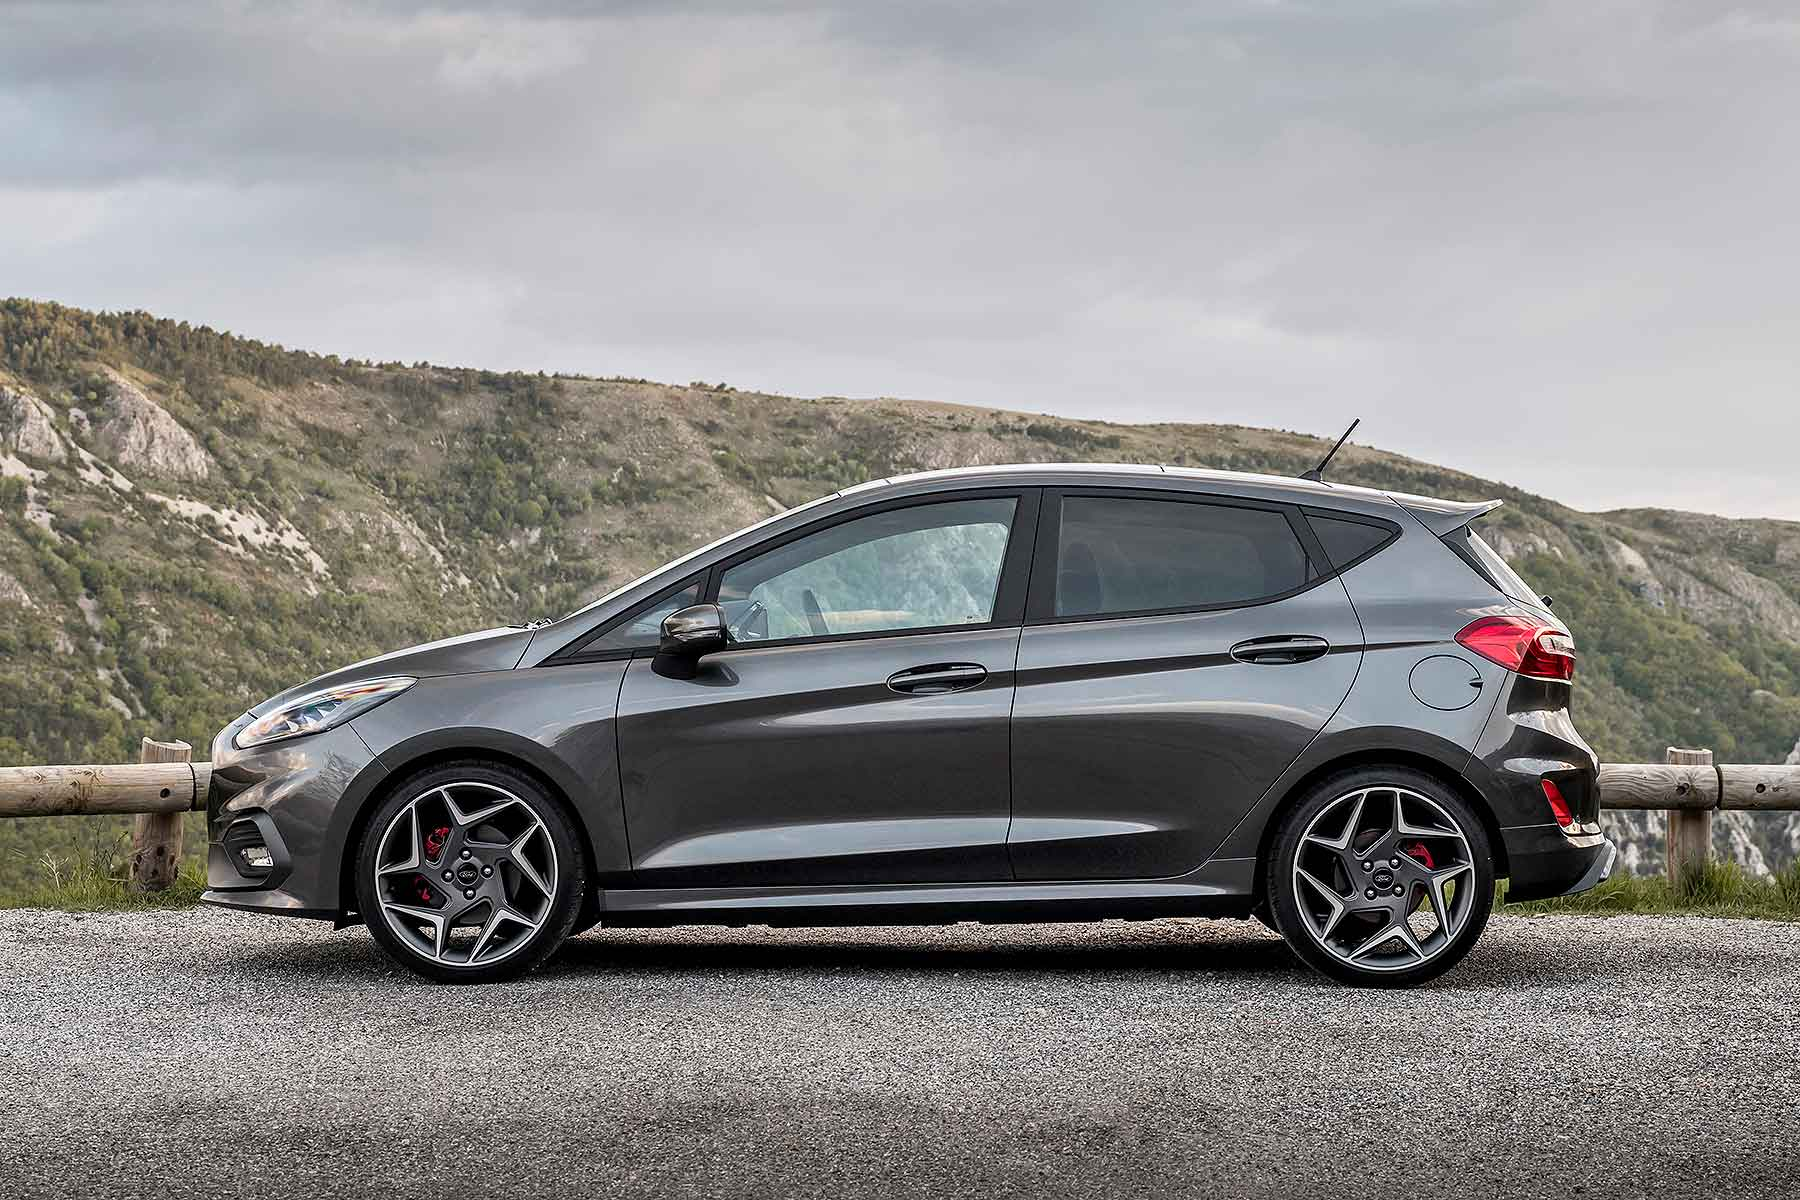 2018 ford fiesta st motoring research. Black Bedroom Furniture Sets. Home Design Ideas